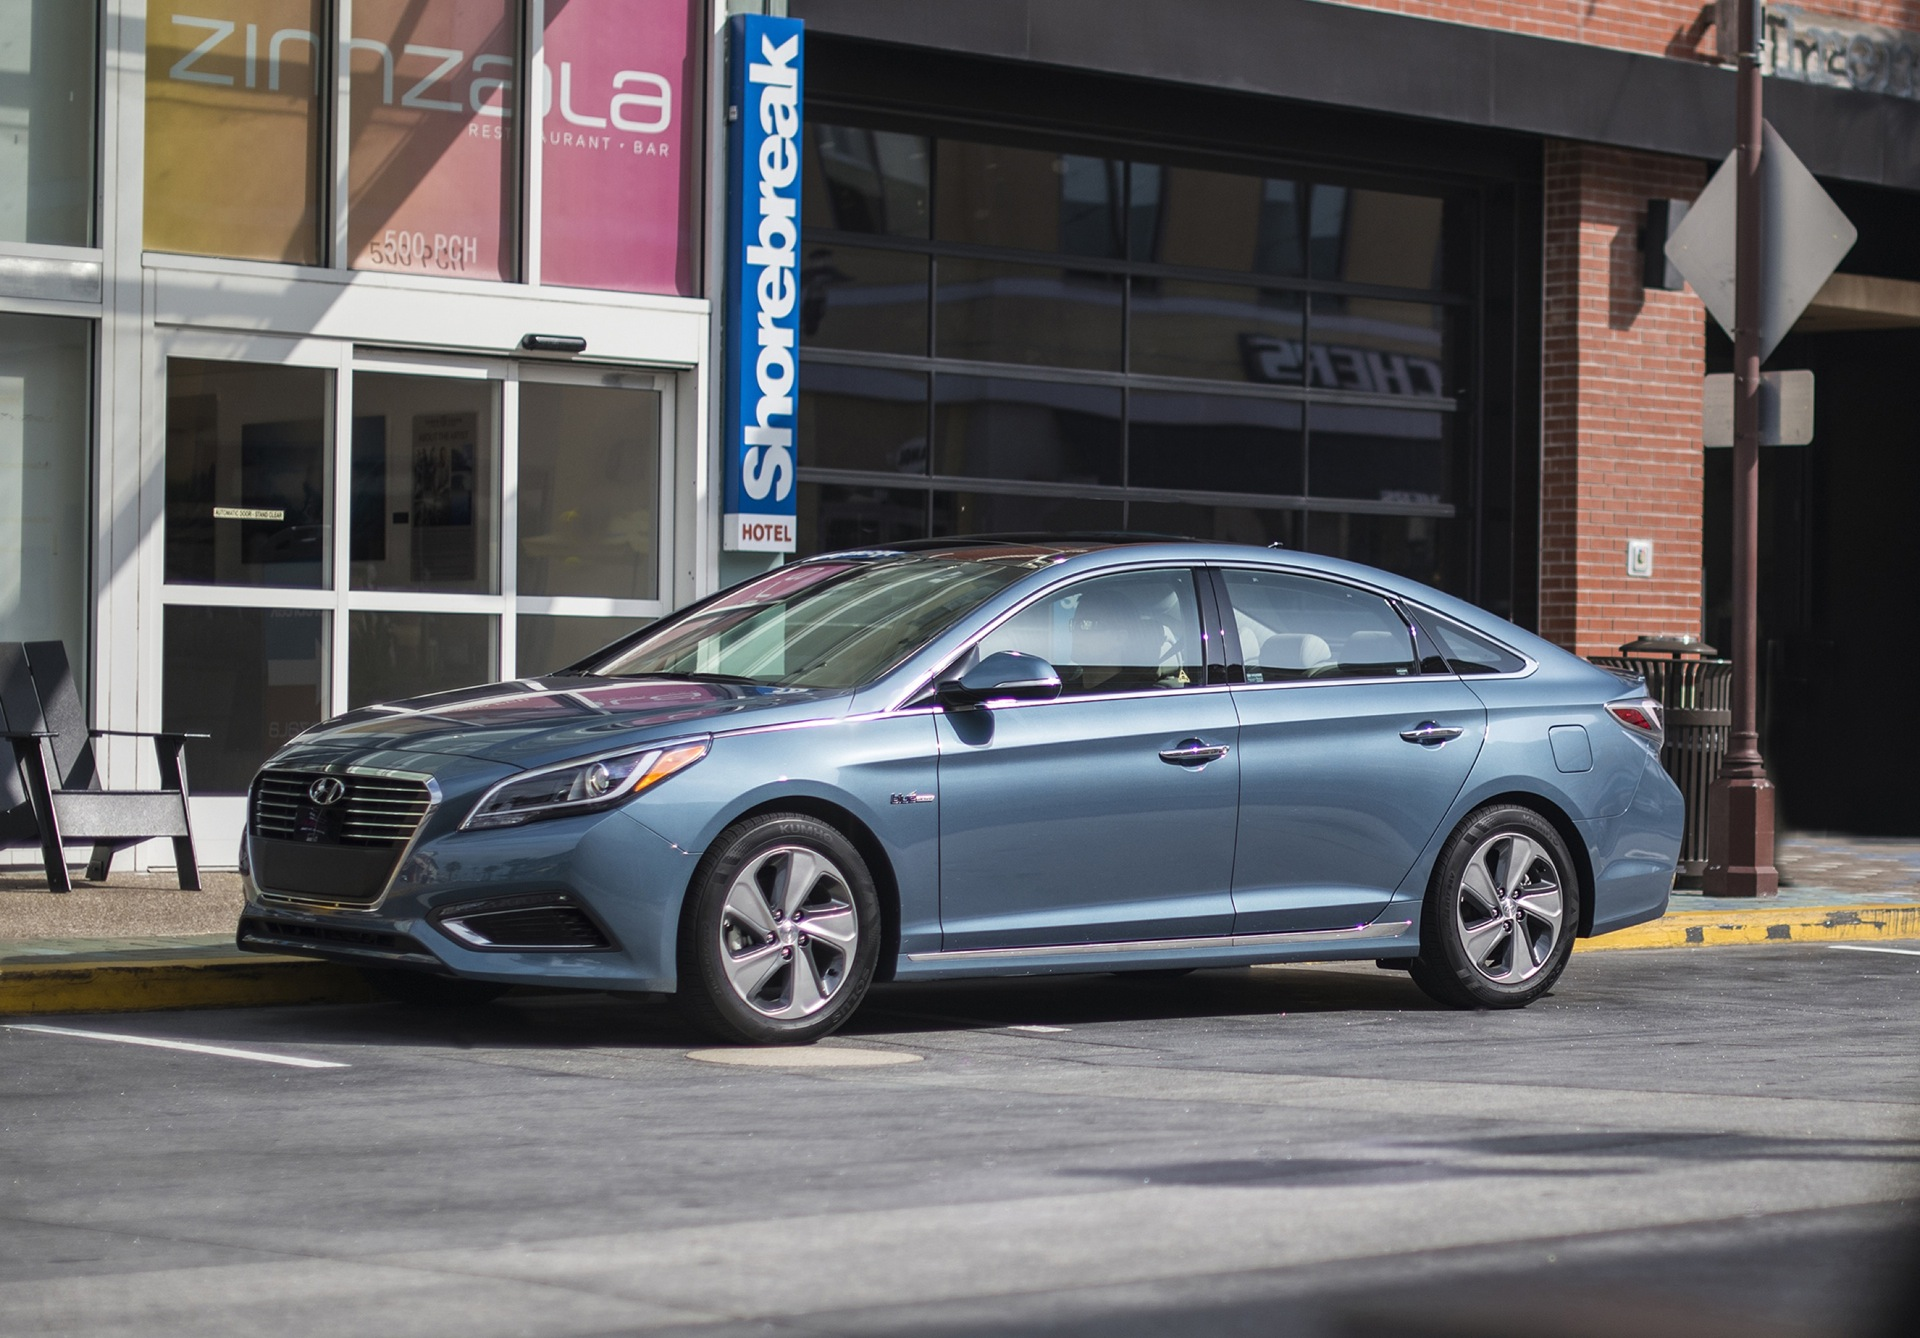 new and used hyundai sonata hybrid prices photos reviews specs the car connection. Black Bedroom Furniture Sets. Home Design Ideas